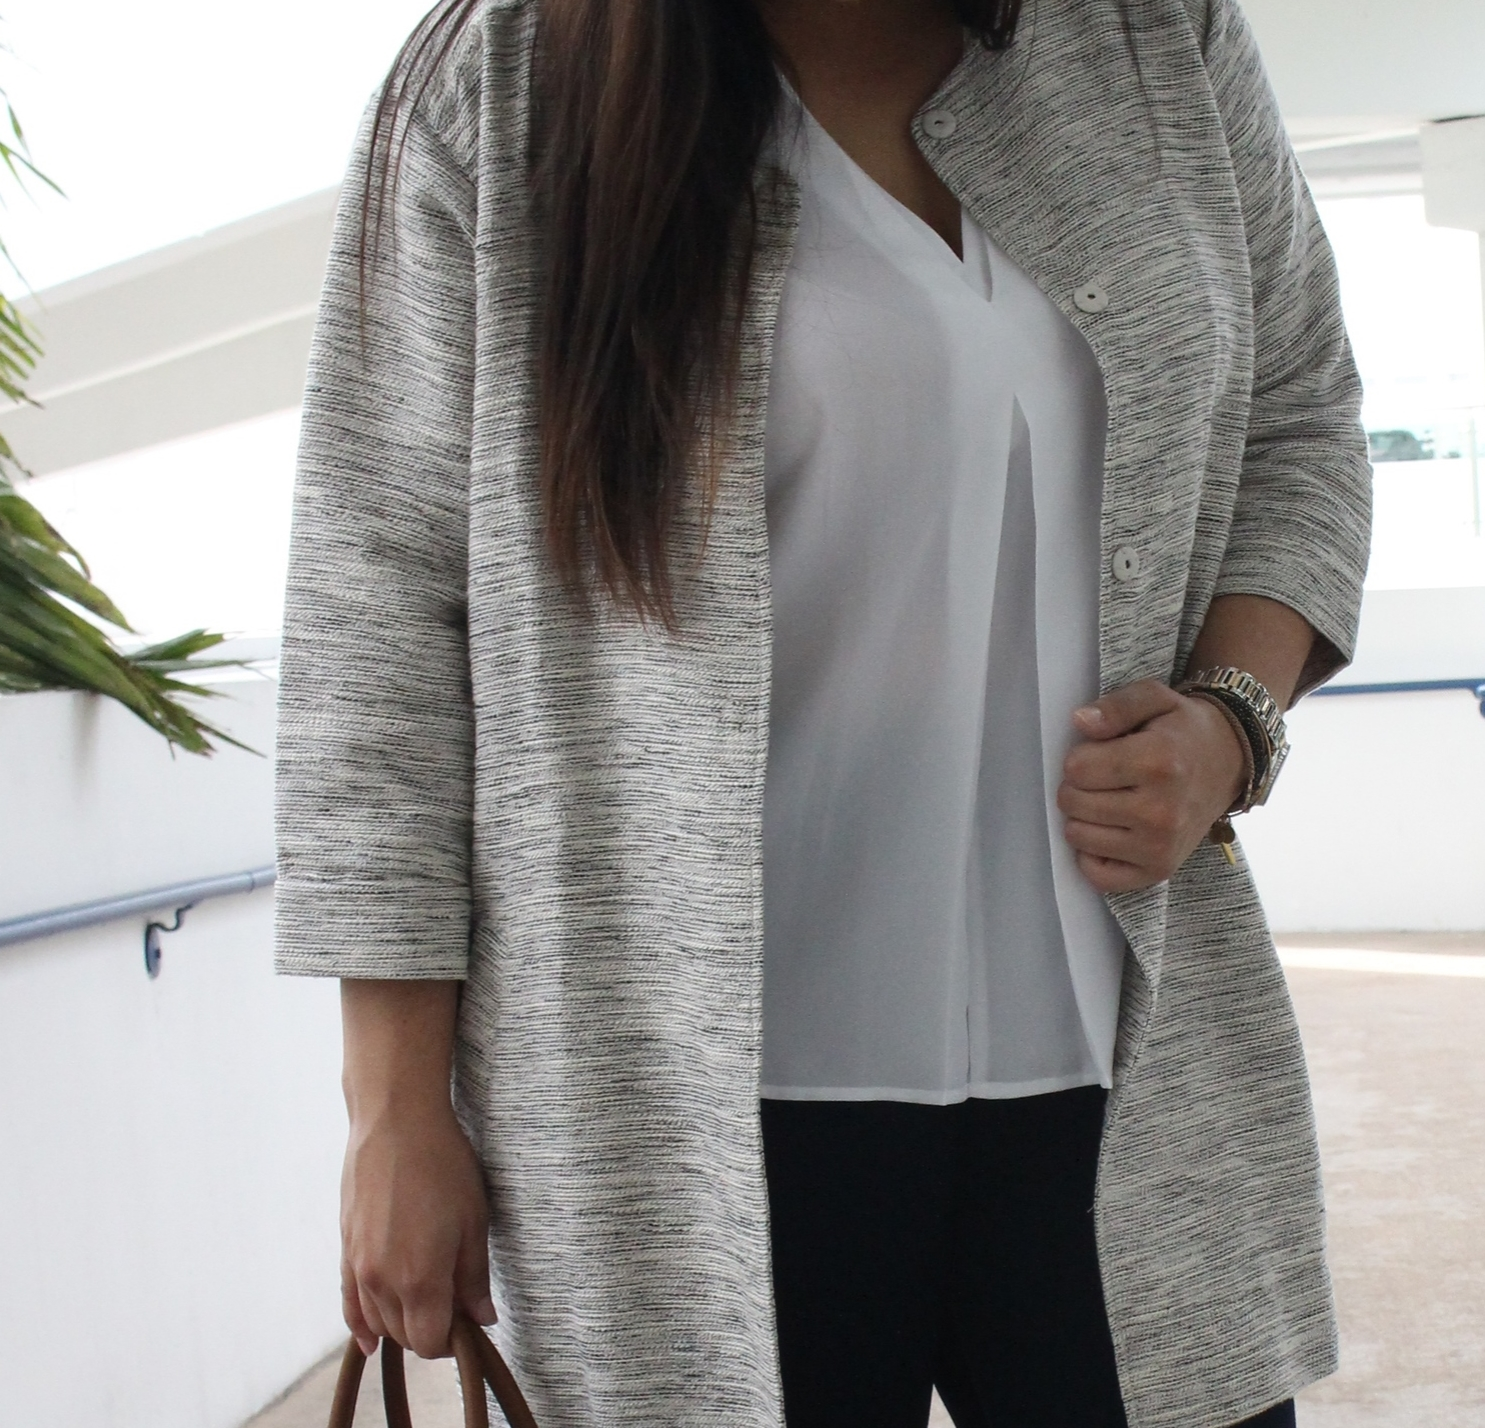 10 pieces to include in your capsule wardrobe this spring for a minimalist closet // miami lifestyle blogger / Macys / Eileen Fisher / slow living blogger